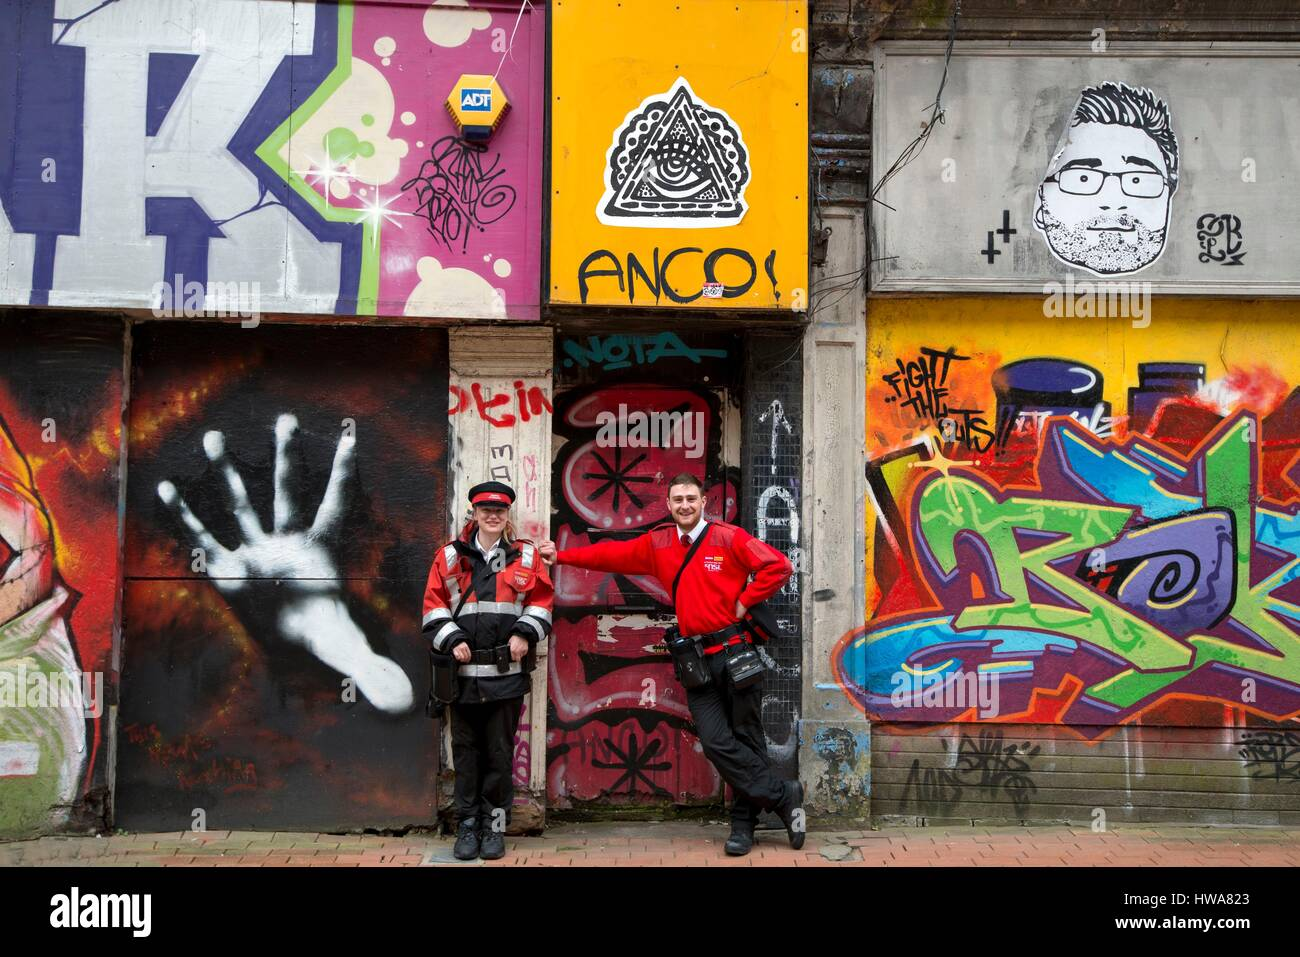 United Kingdom, Northern Ireland, Belfast, Local police pausing in front of graffitis in the city center - Stock Image